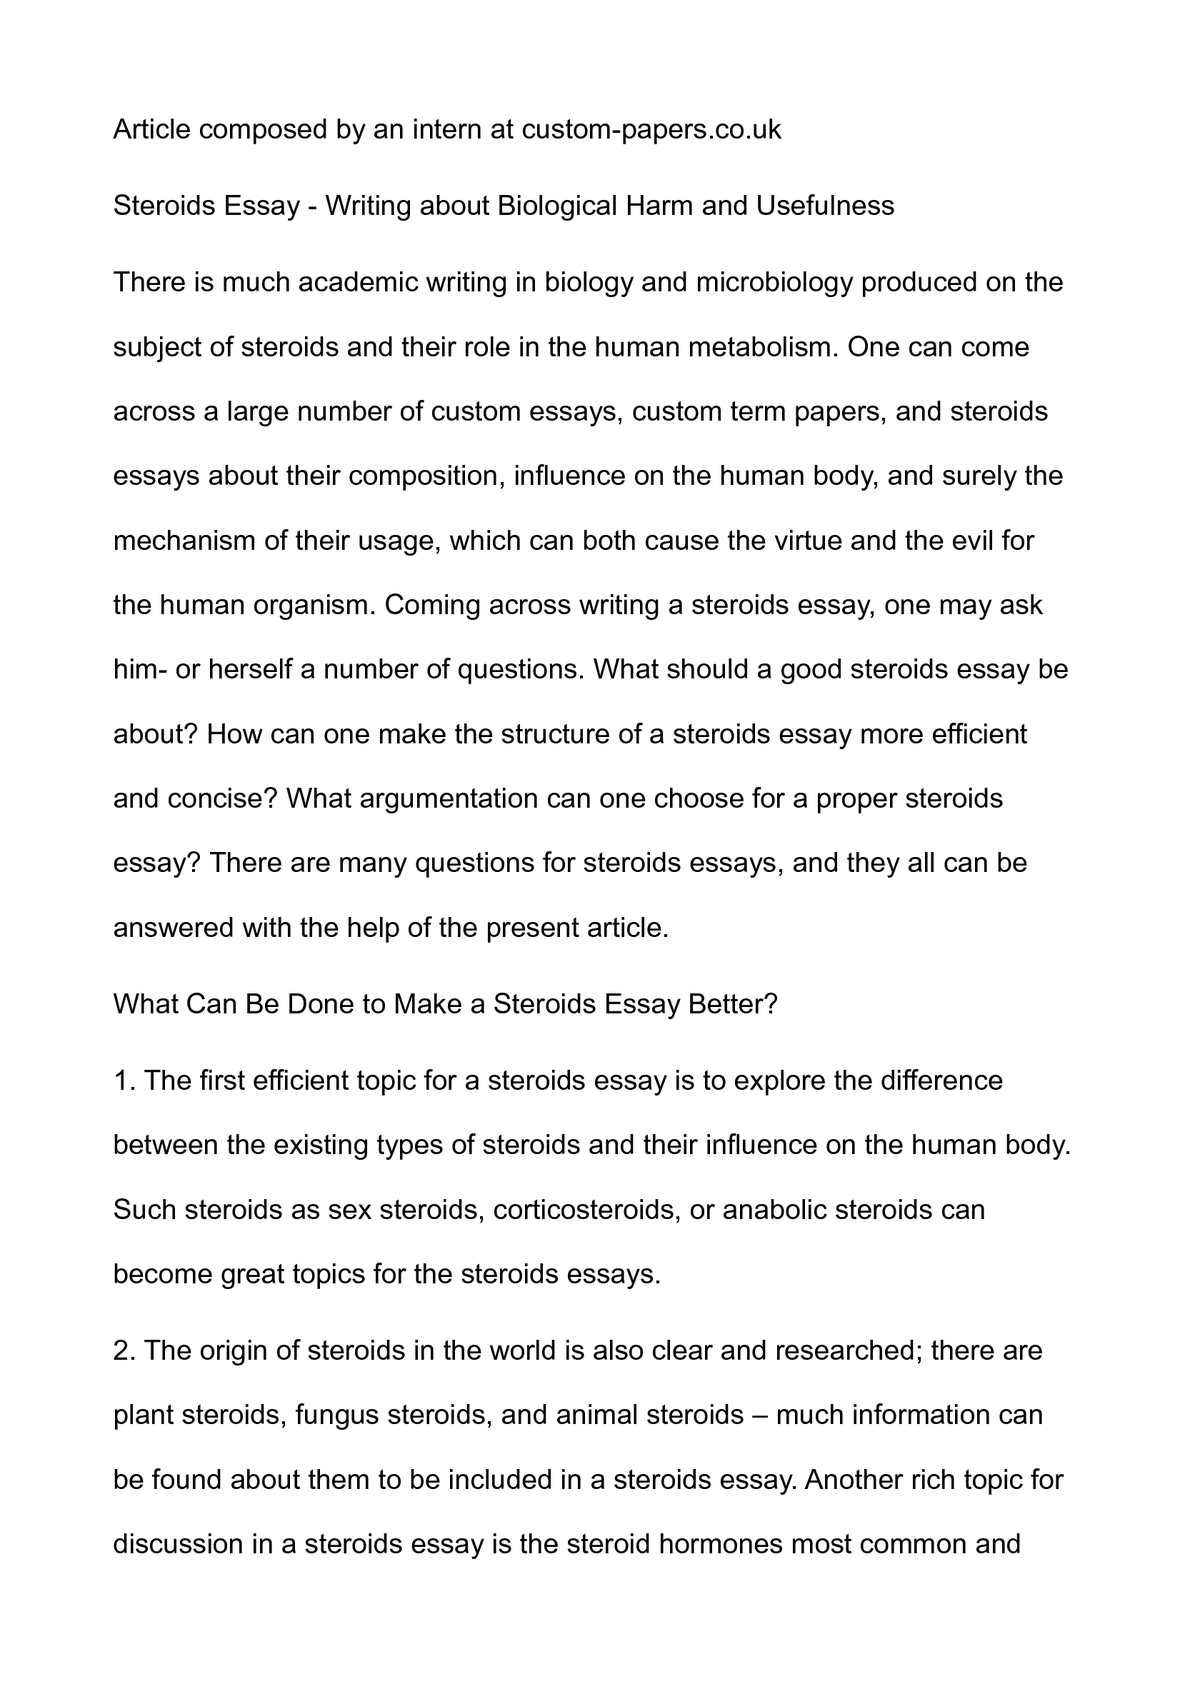 Calamo  Steroids Essay  Writing About Biological Harm And Usefulness